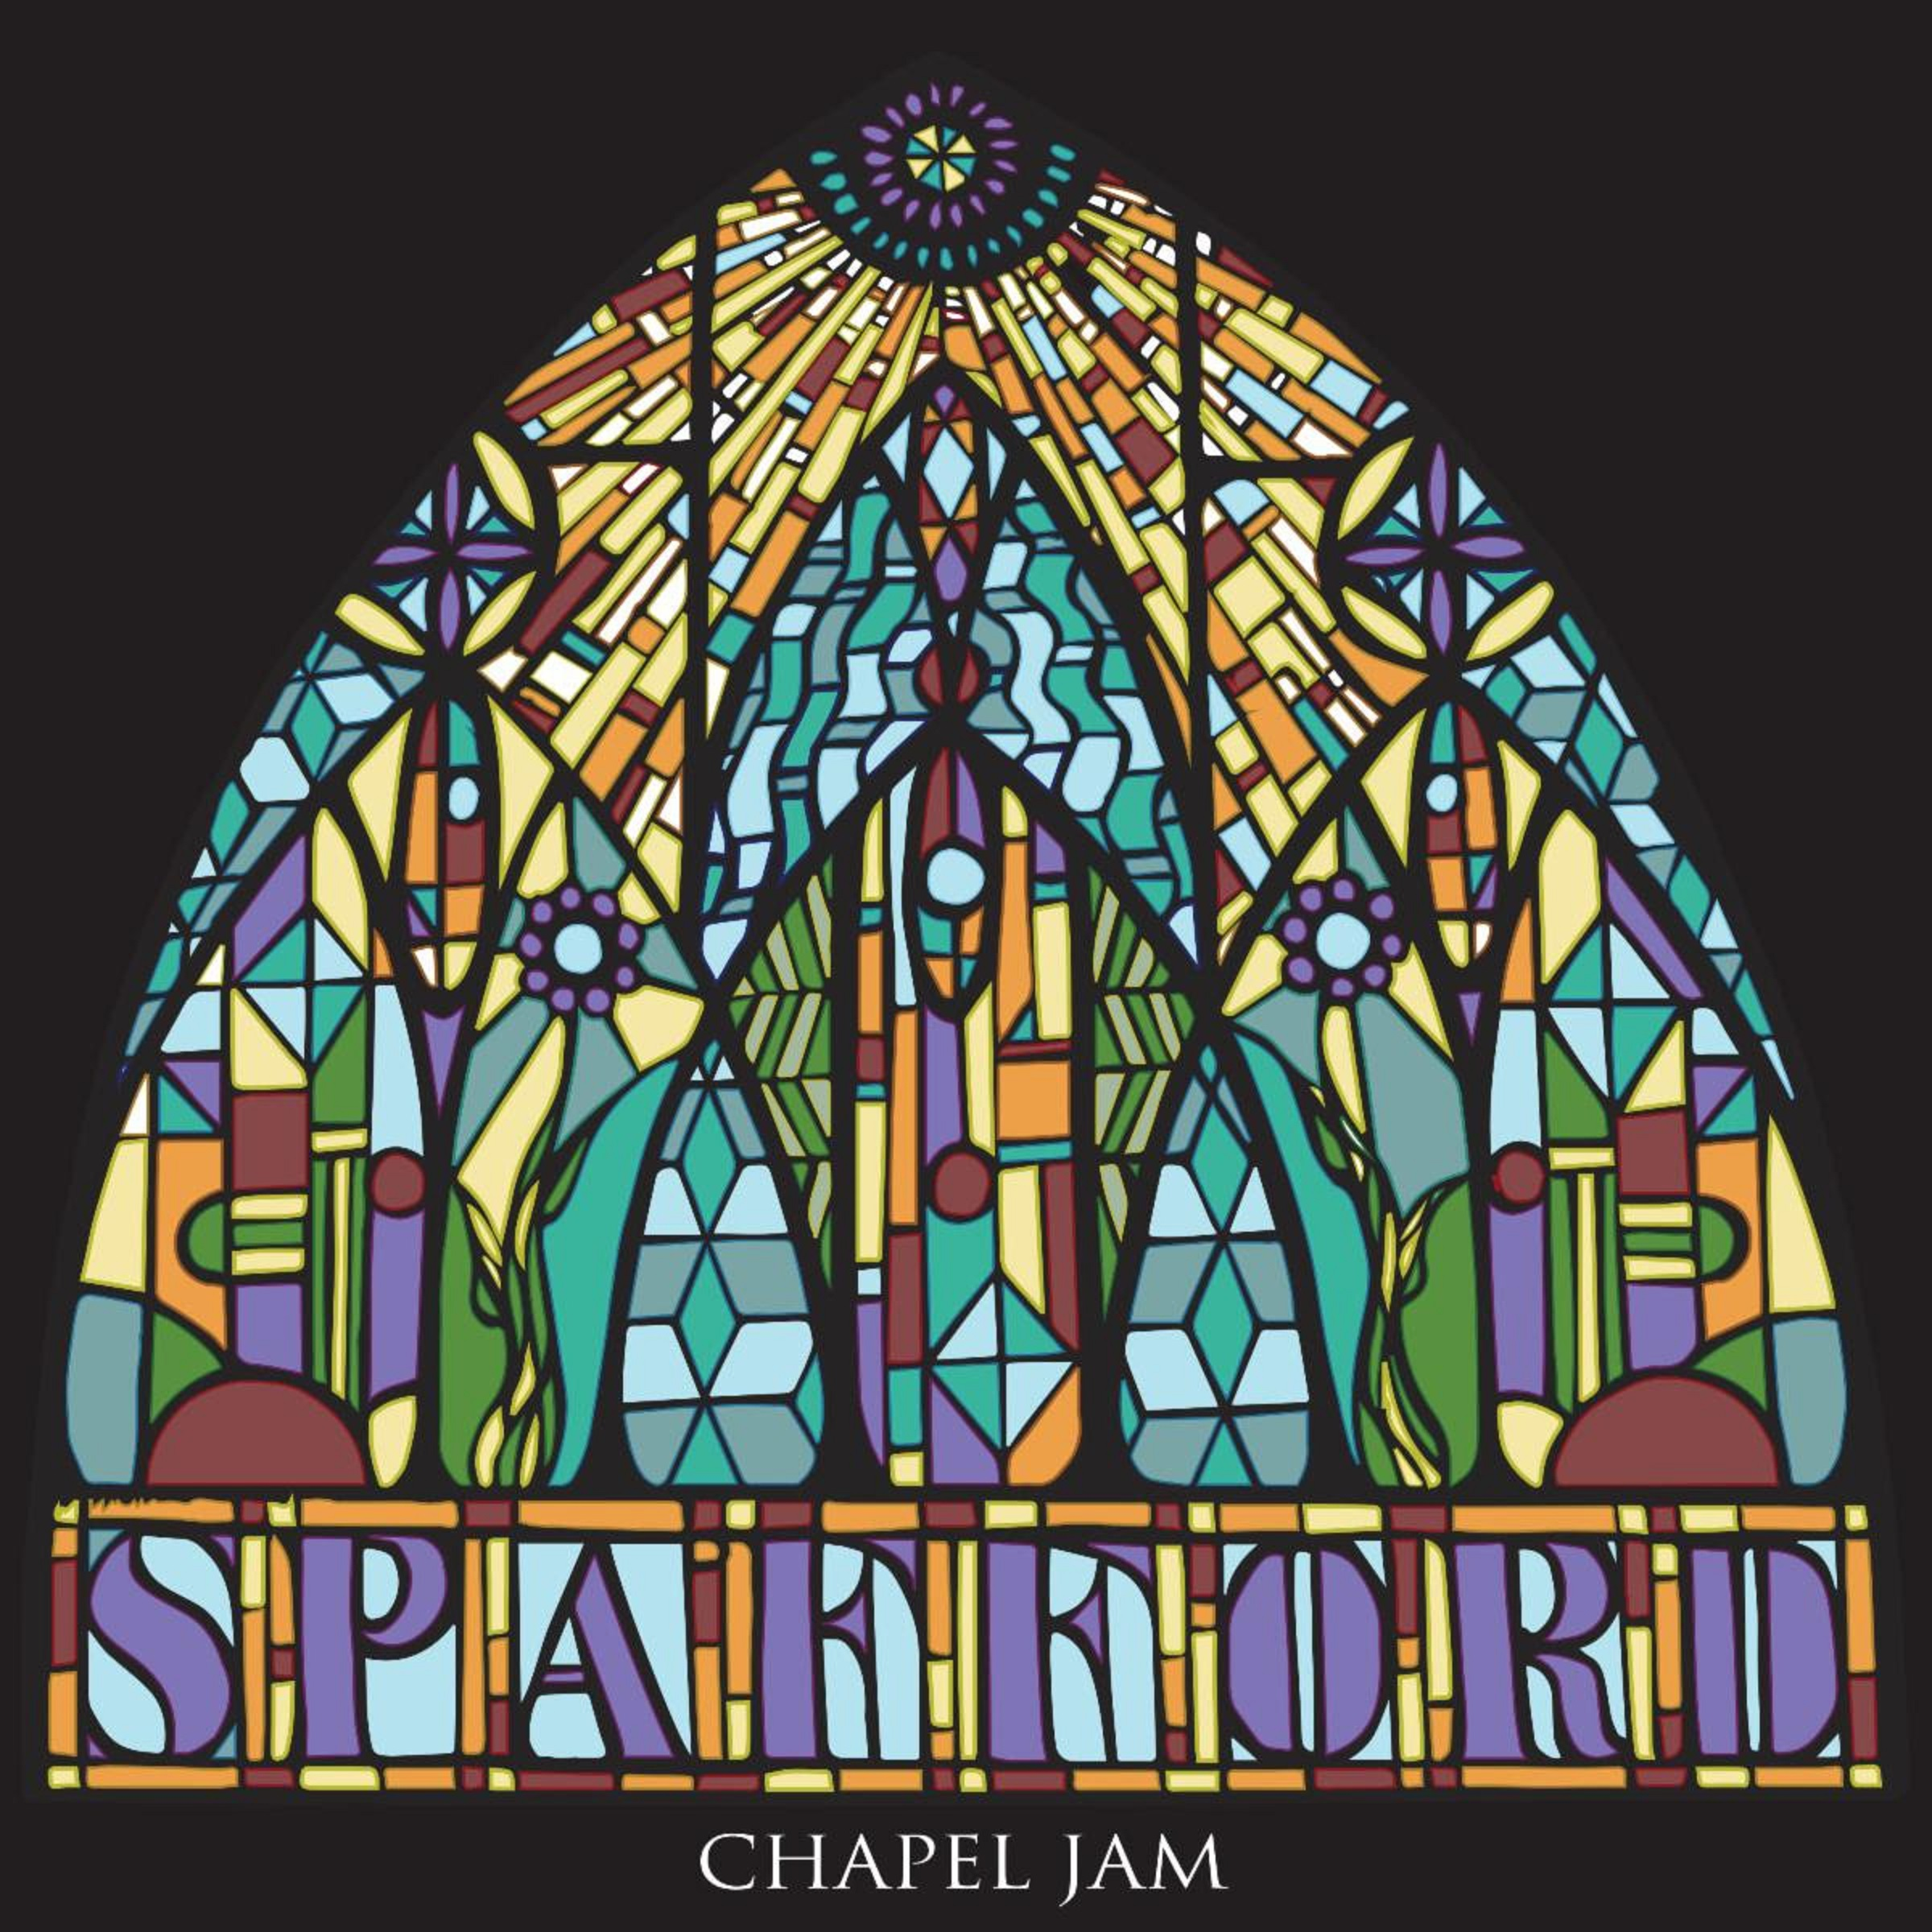 Spafford announces the release of Chapel Jam - and odyssey in musical exploration